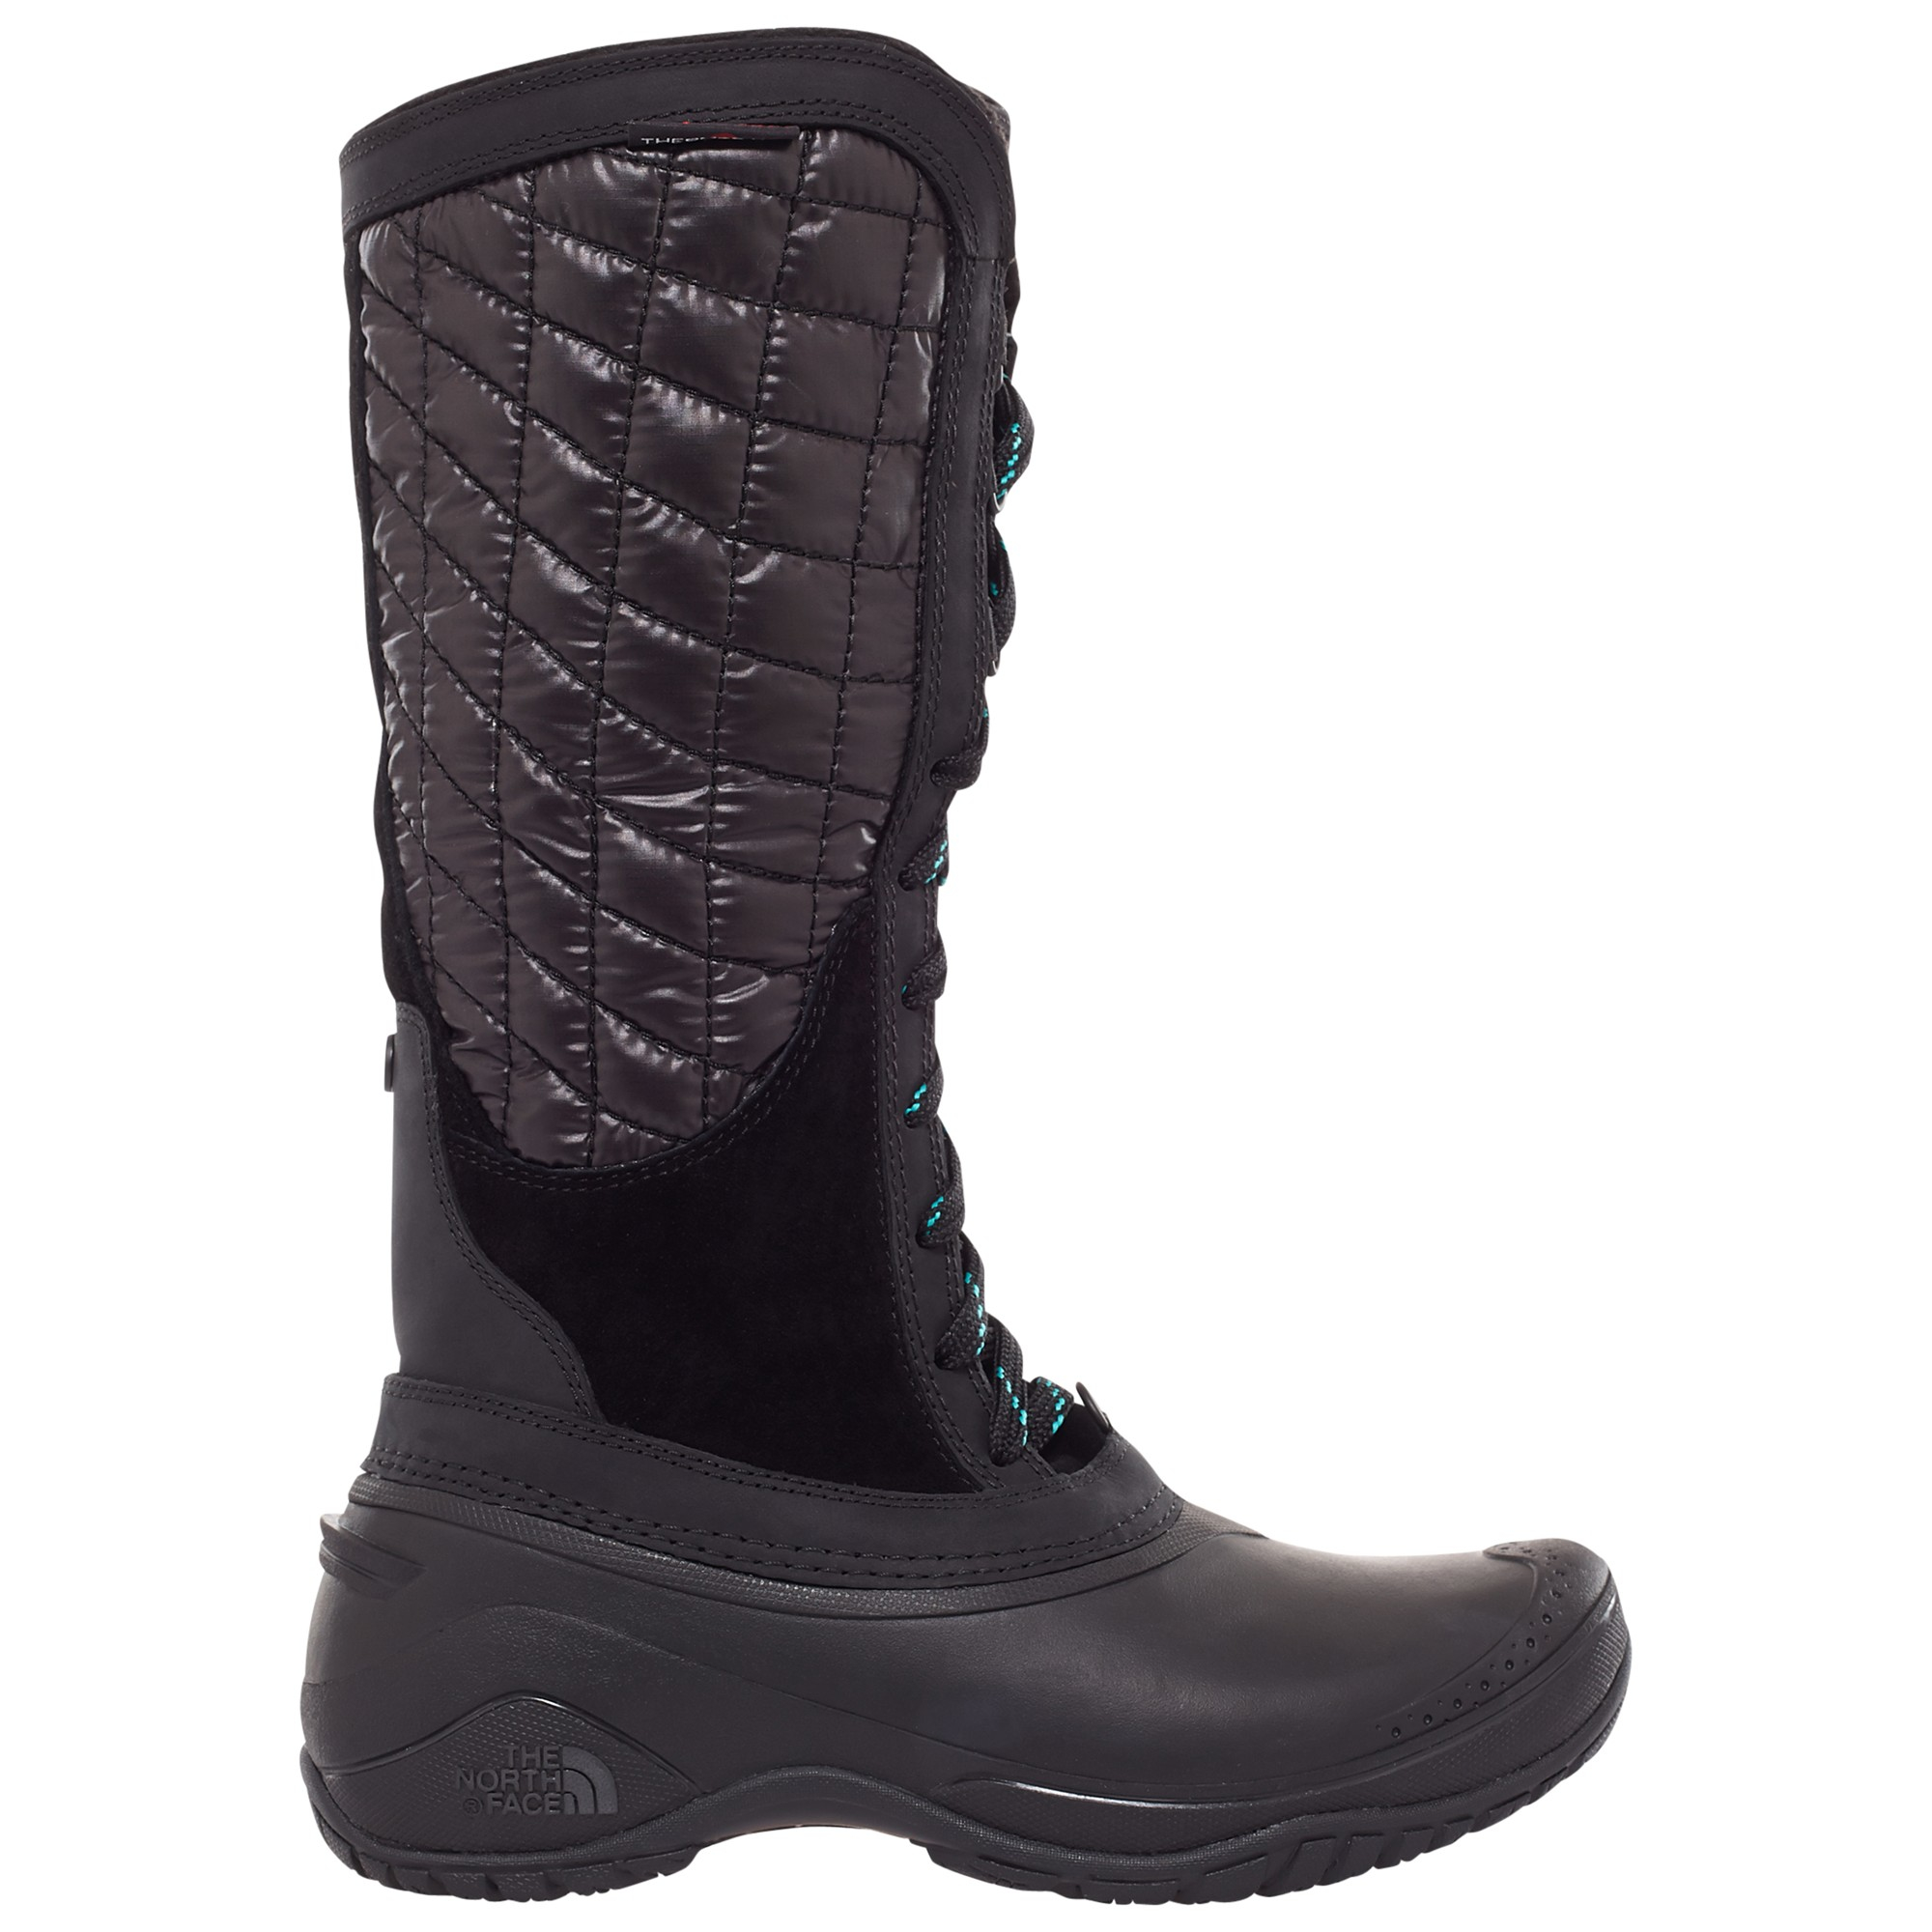 Awesome  Shoes  The North Face  The North Face Abby IV Women39s Snow Boot